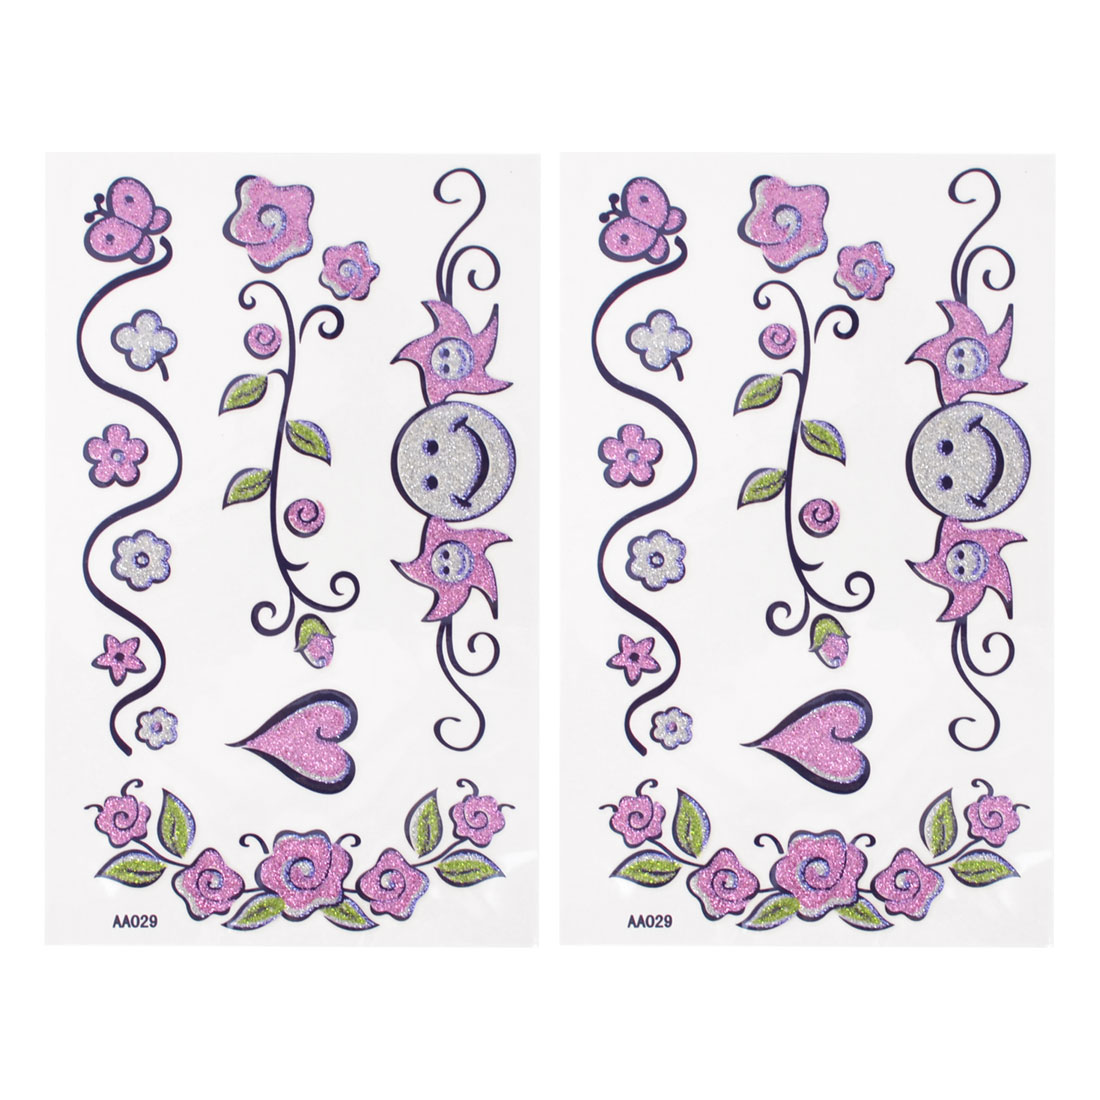 2Pcs Pink Skin Decor Tribal Flower Pattern Transfer Tattoo Beauty Decal Body Art Stickers